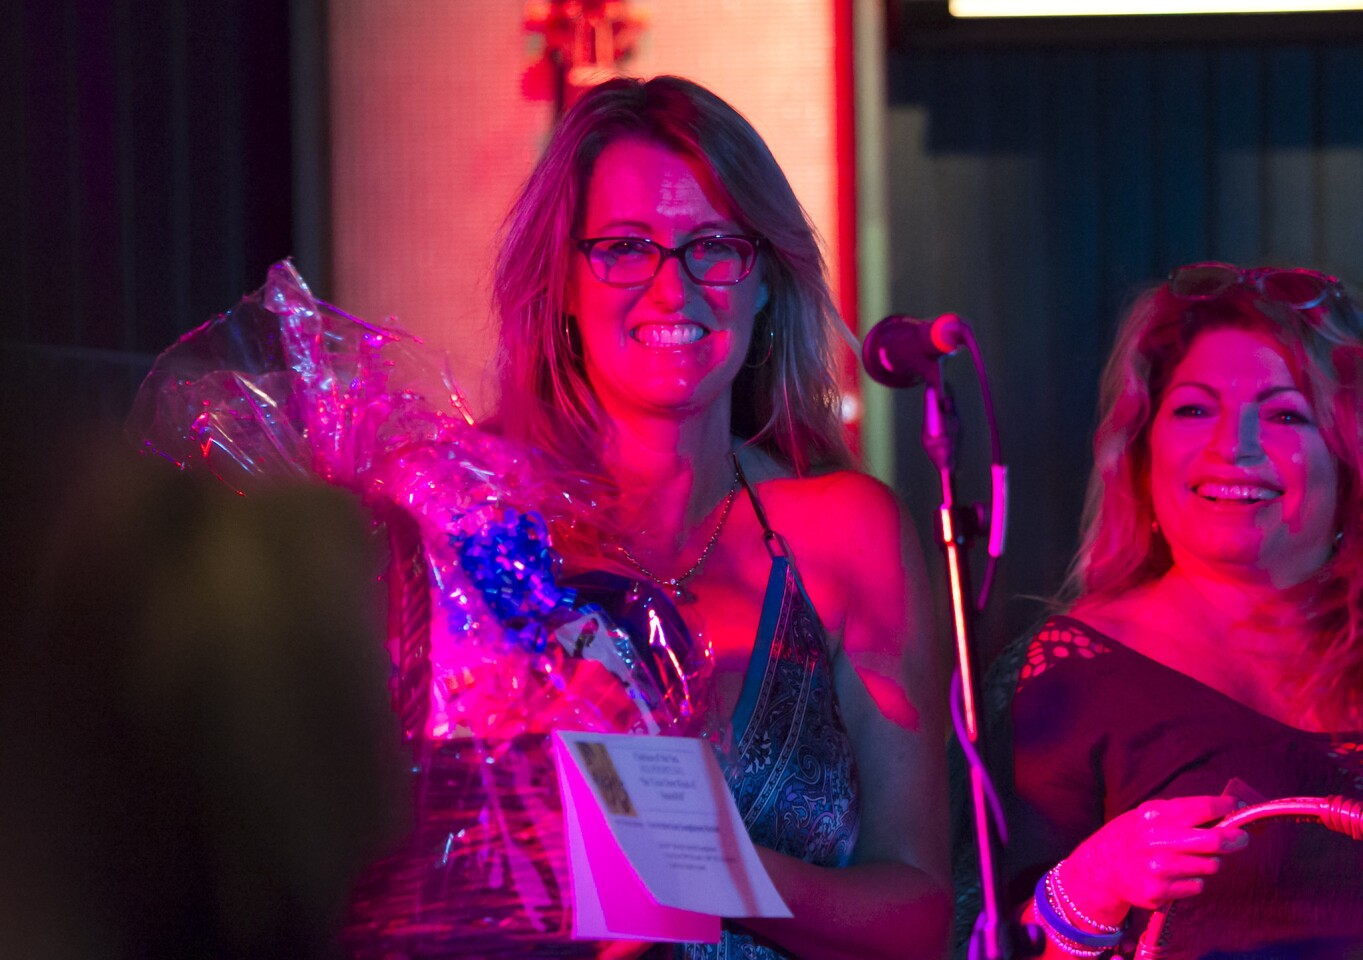 Photo Gallery: Nearly $30K raised for paralyzed woman